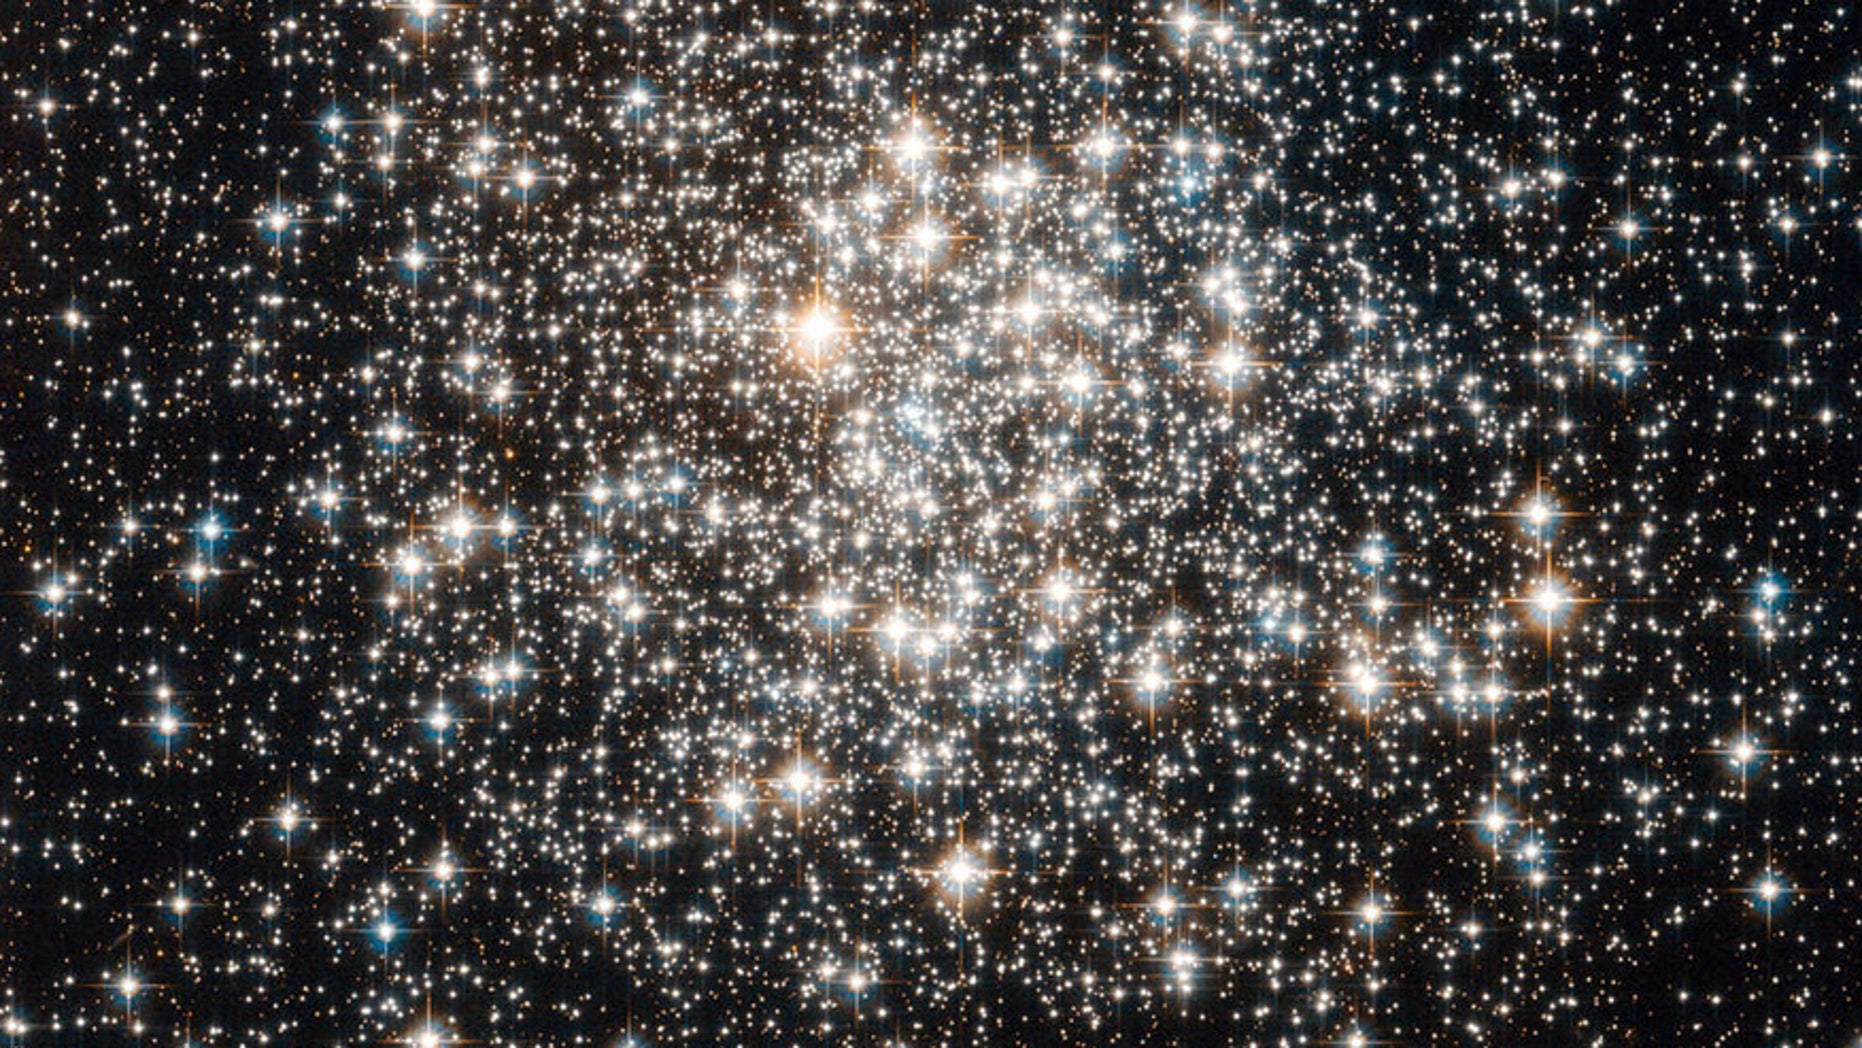 File photo - the Hubble Space Telescope has captured a crowd of stars that looks rather like a stadium darkened before a show, lit only by the flashbulbs of the audience's cameras. (NASA)